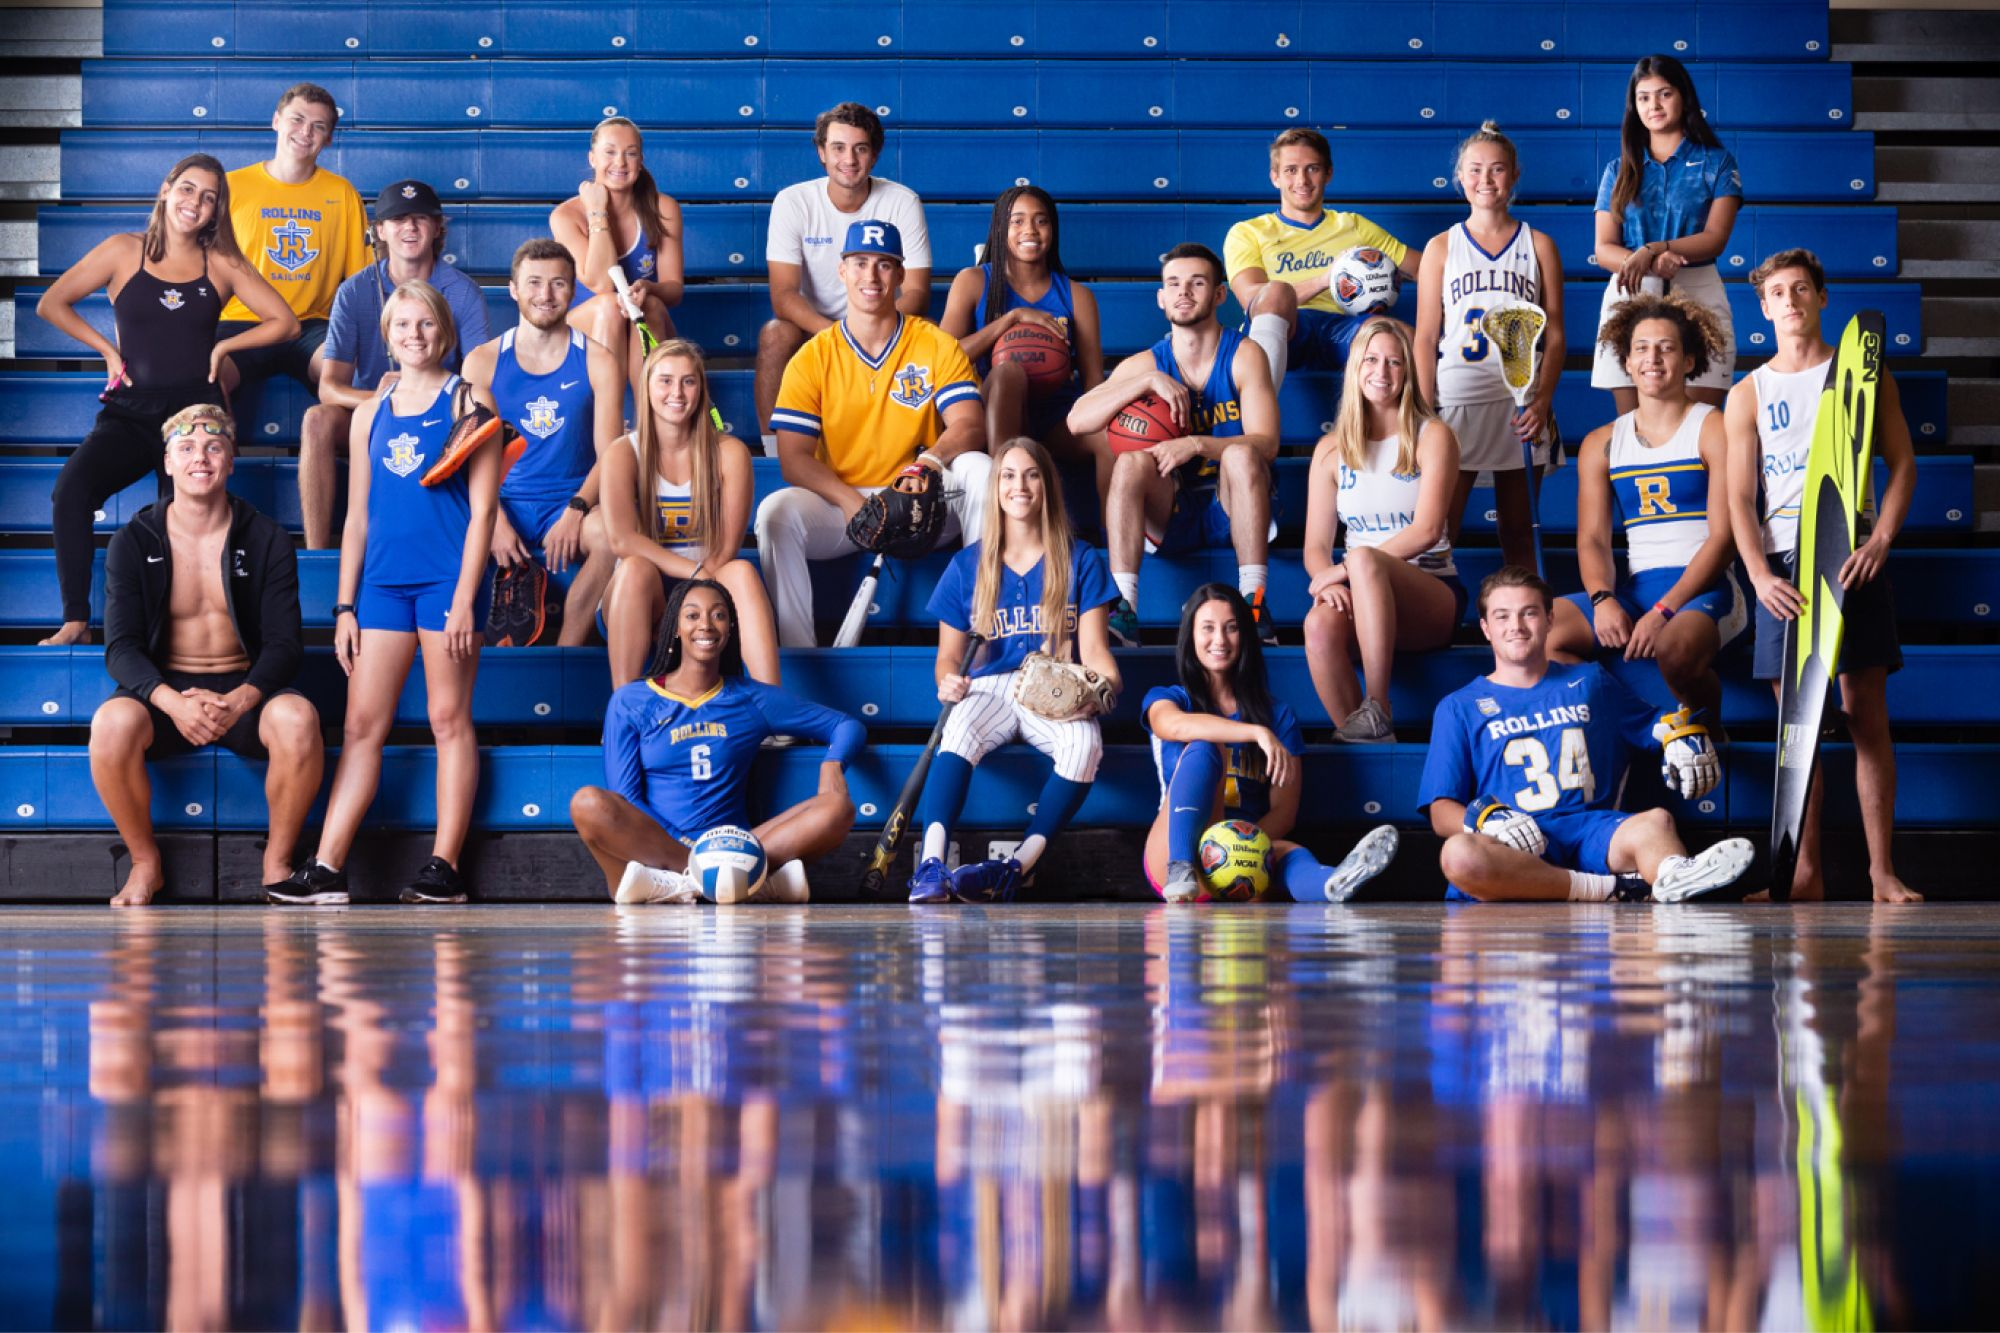 Group photo of all the different athletes in their uniforms.